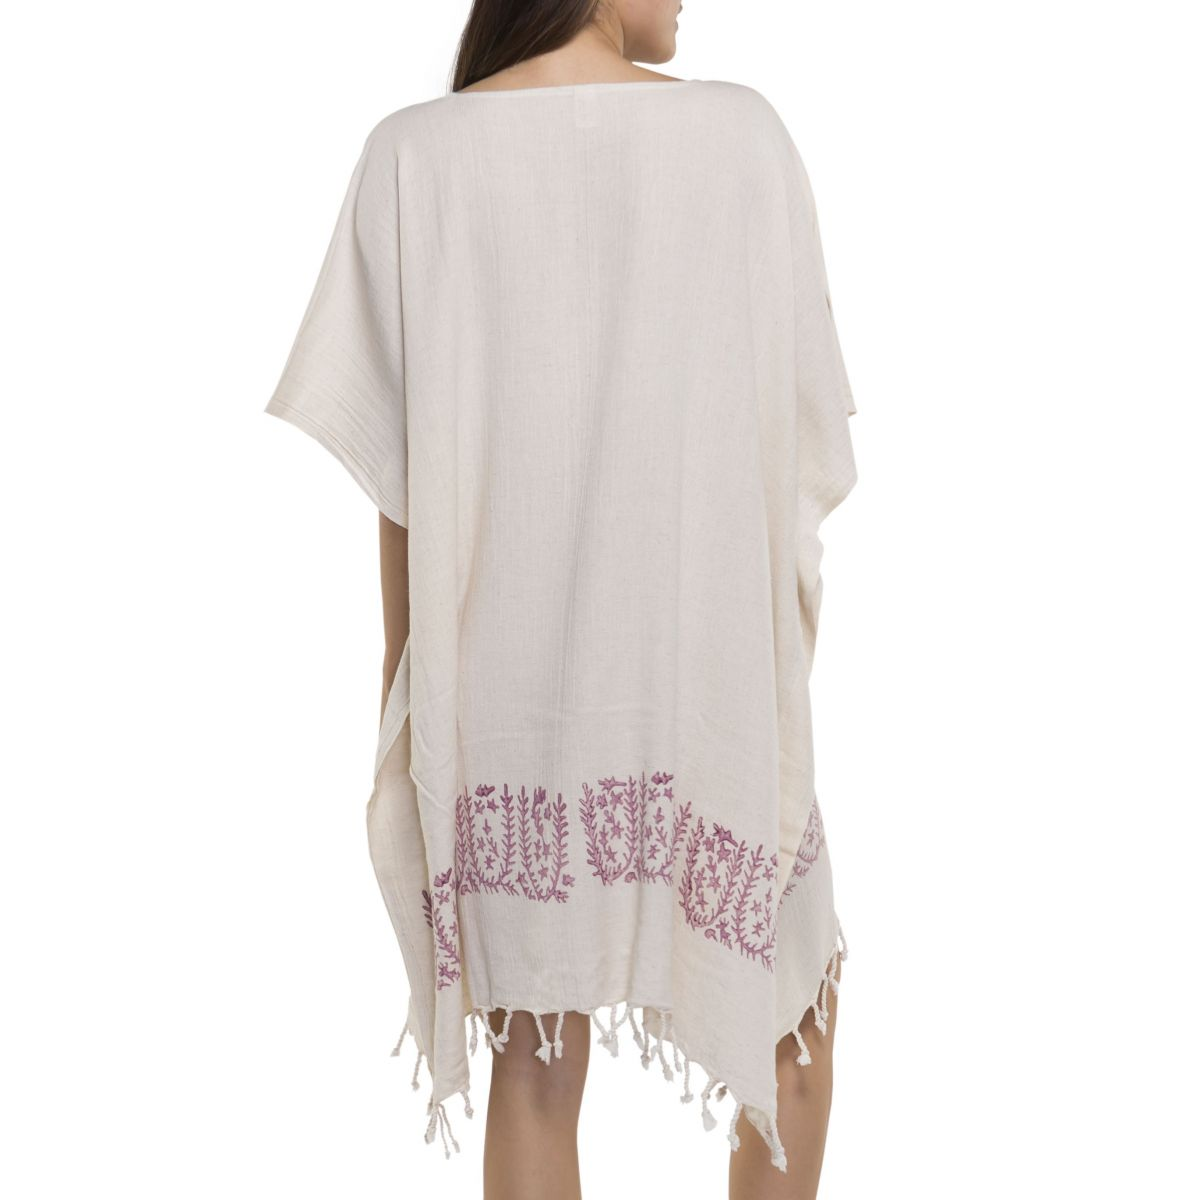 Tunic - Hand Printed 01 / Dusty Rose